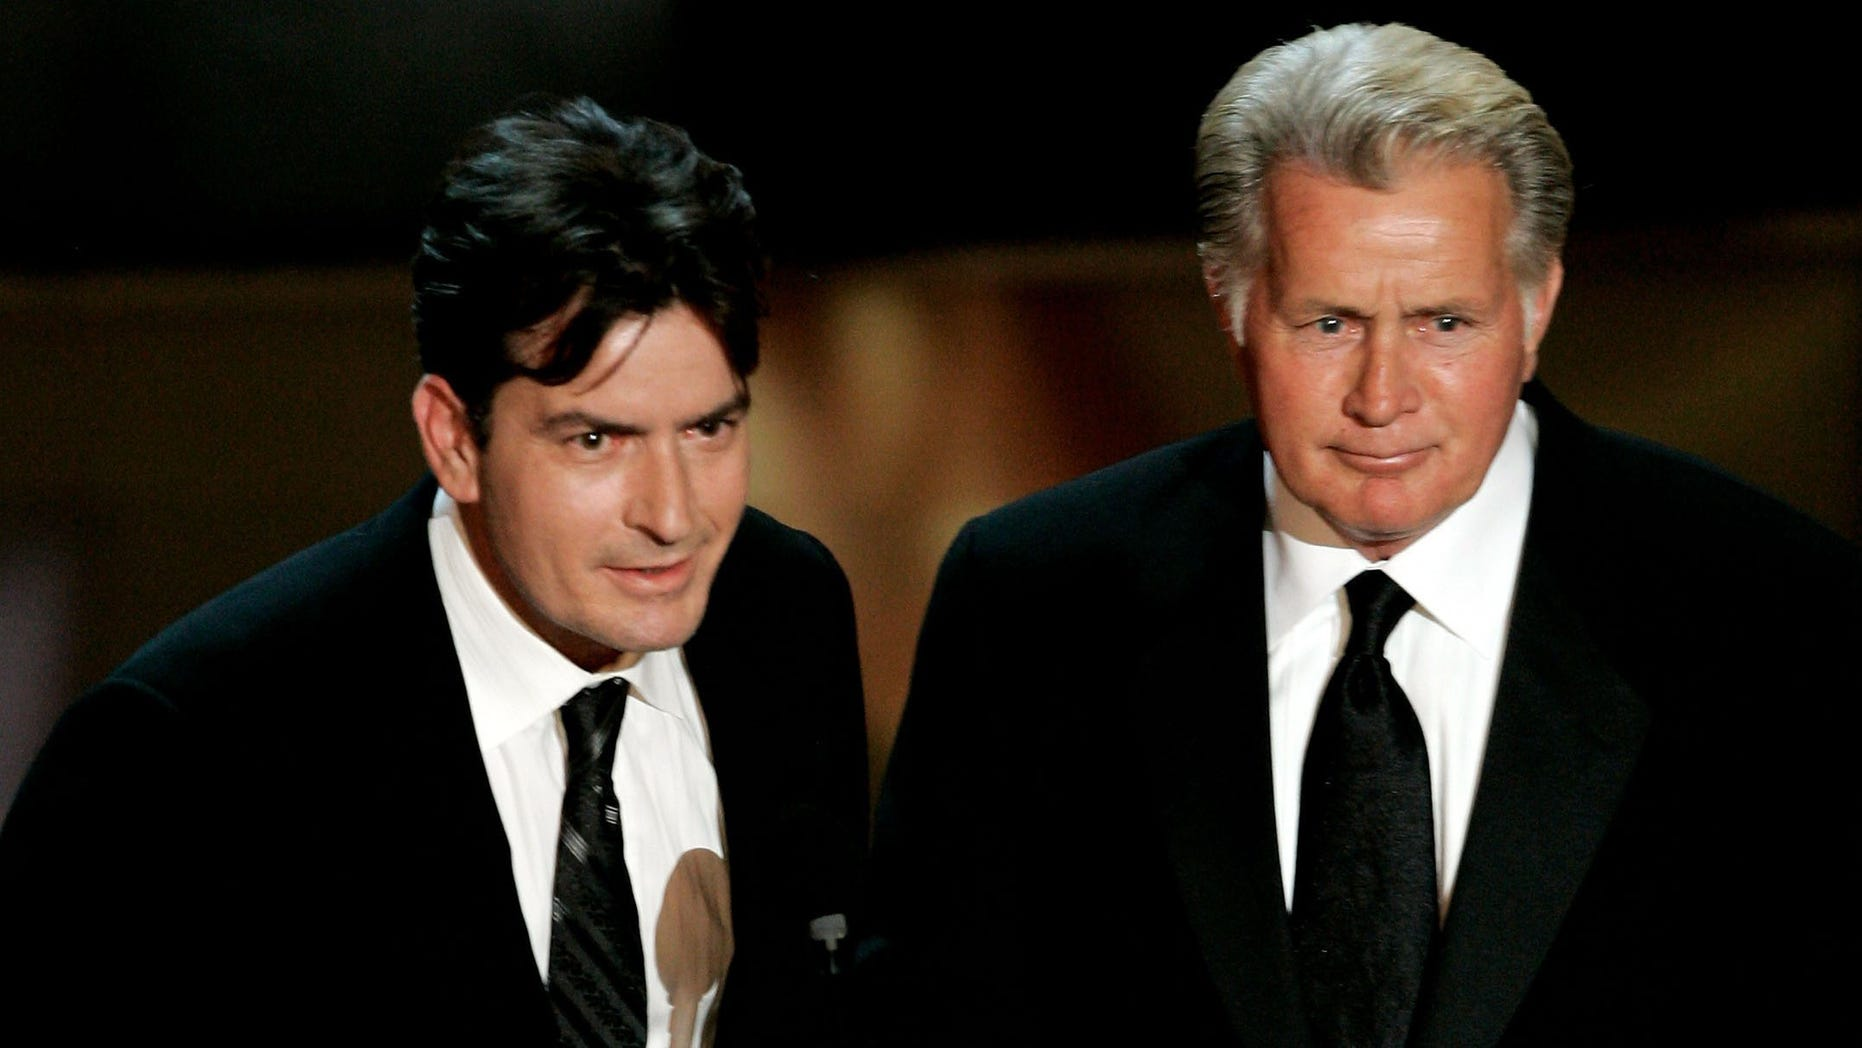 LOS ANGELES, CA - AUGUST 27:  Actors Charlie Sheen (L) and Martin Sheen present the award for Outstanding Supporting Actress in a Drama Series onstage at the 58th Annual Primetime Emmy Awards at the Shrine Auditorium on August 27, 2006 in Los Angeles, California.  (Photo by Vince Bucci/Getty Images)